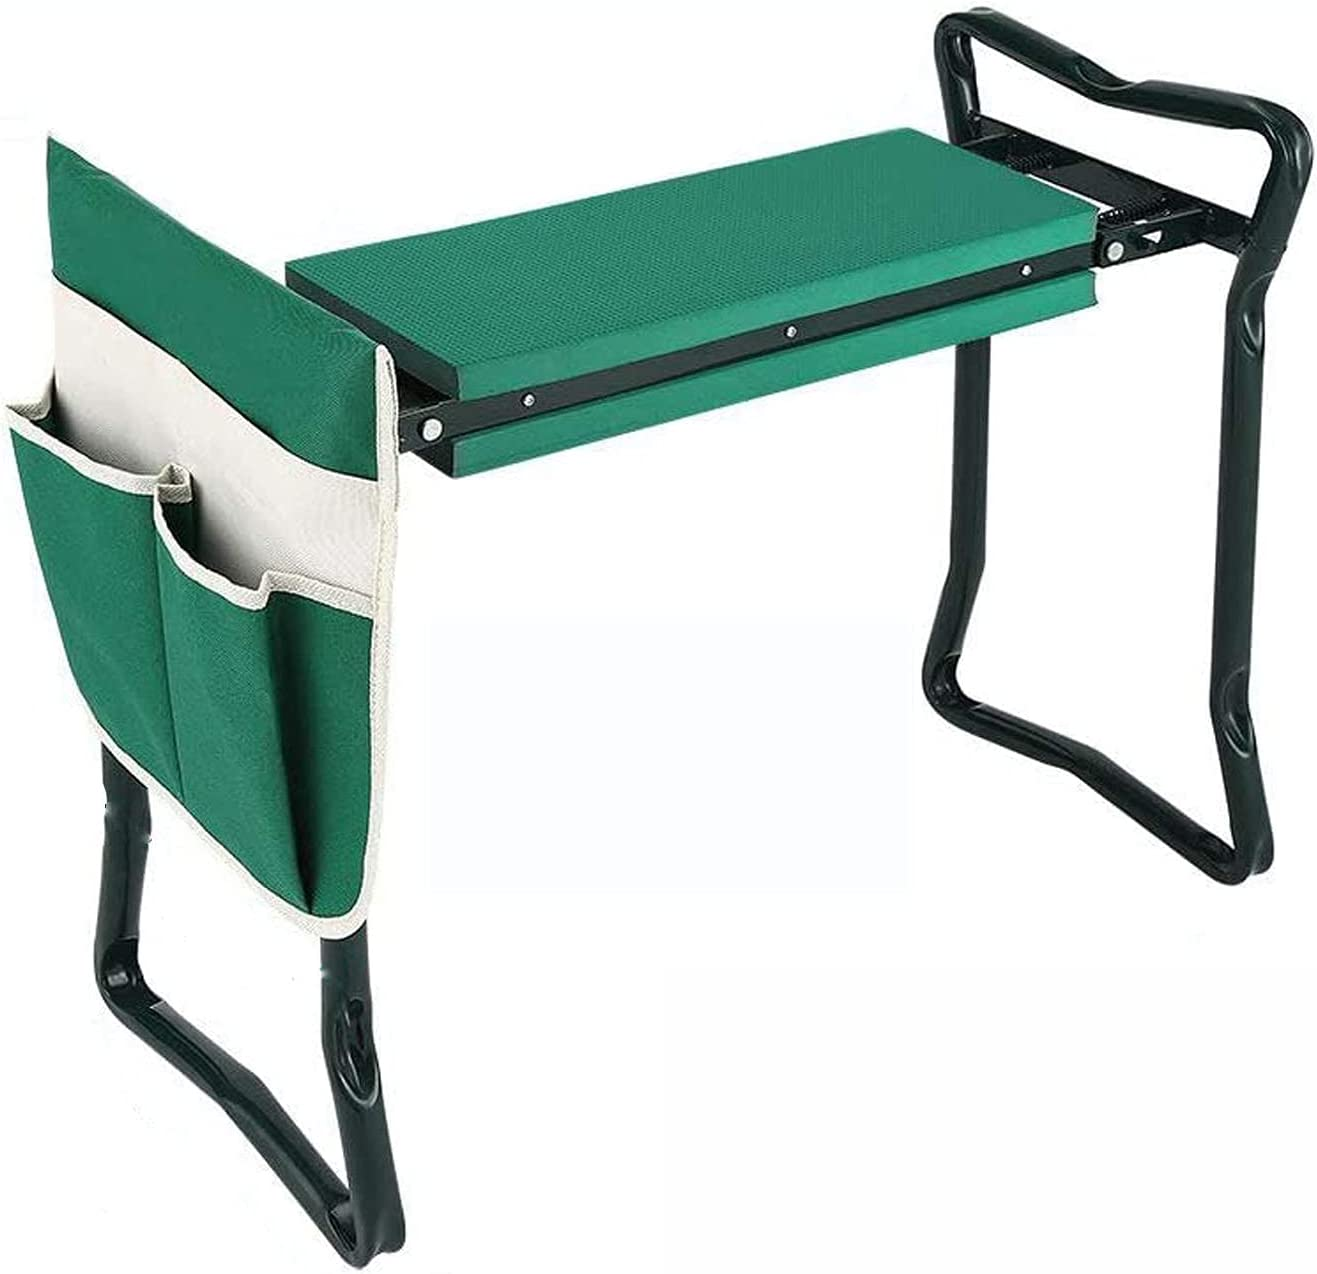 Besthls Garden Kneeler and Seat Stool Heavy Duty Garden Folding Bench with Large Tool Pocket and Soft EVA Kneeling Pad for Gardening Lovers : Patio, Lawn & Garden